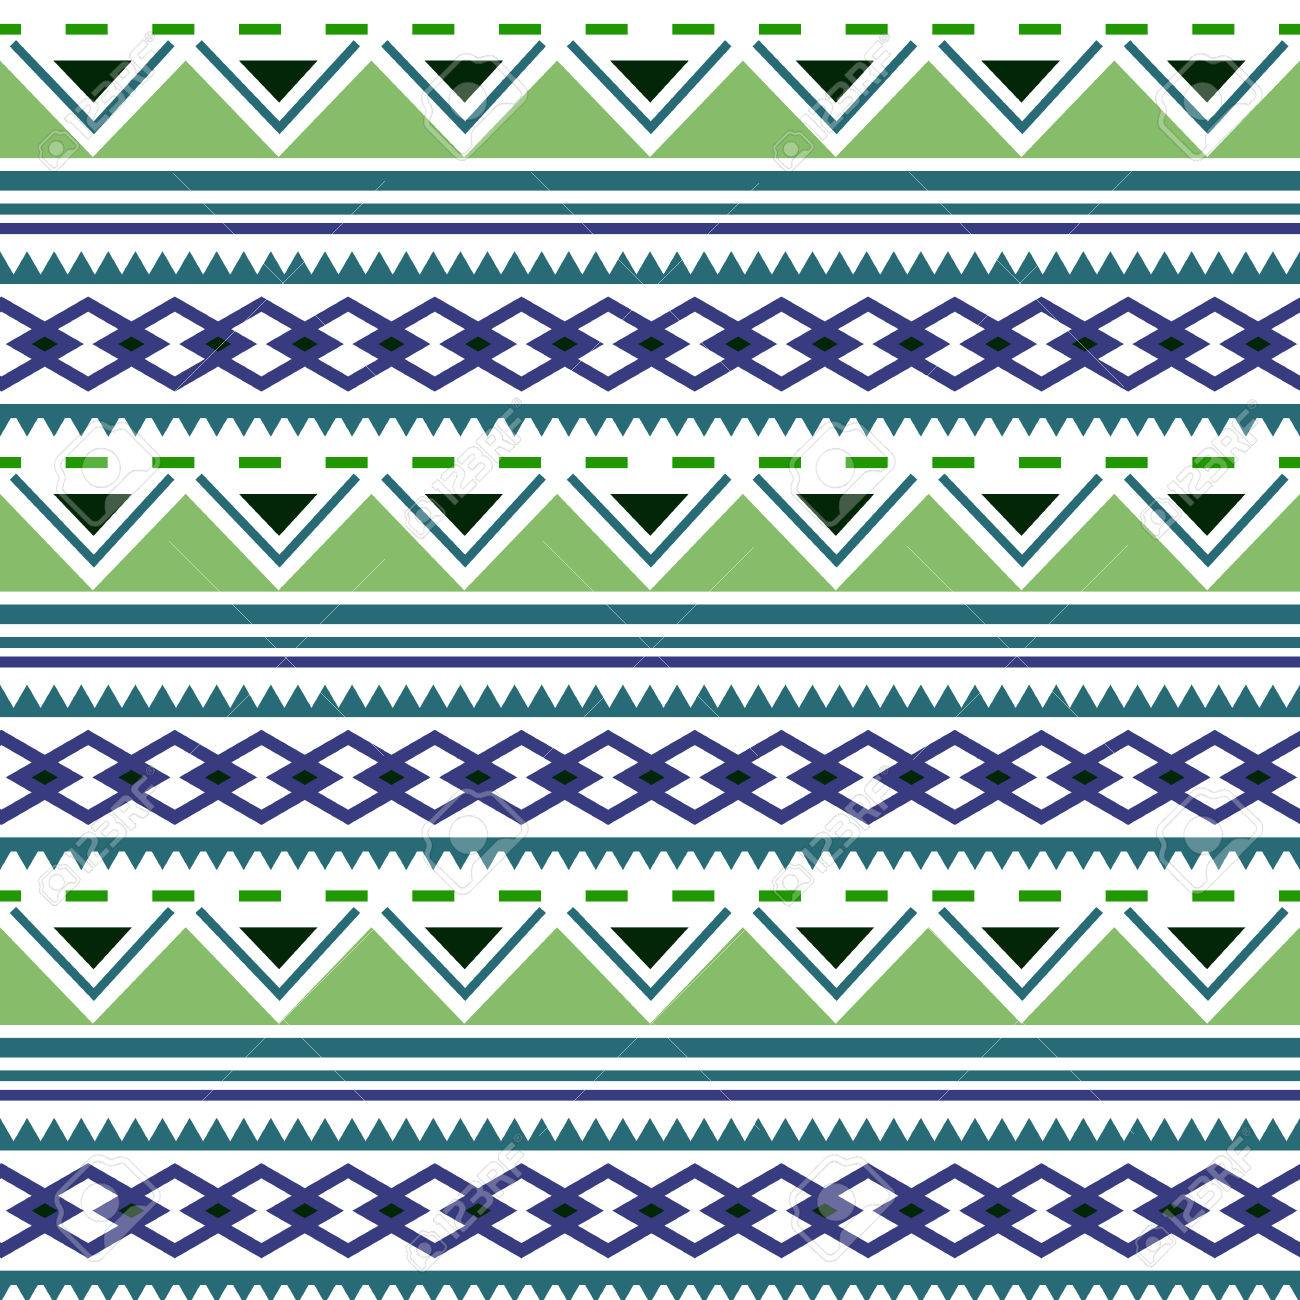 Native american ornaments - Seamless Geometric Pattern Aztec Boho Ornamental Style Ethnic Native American